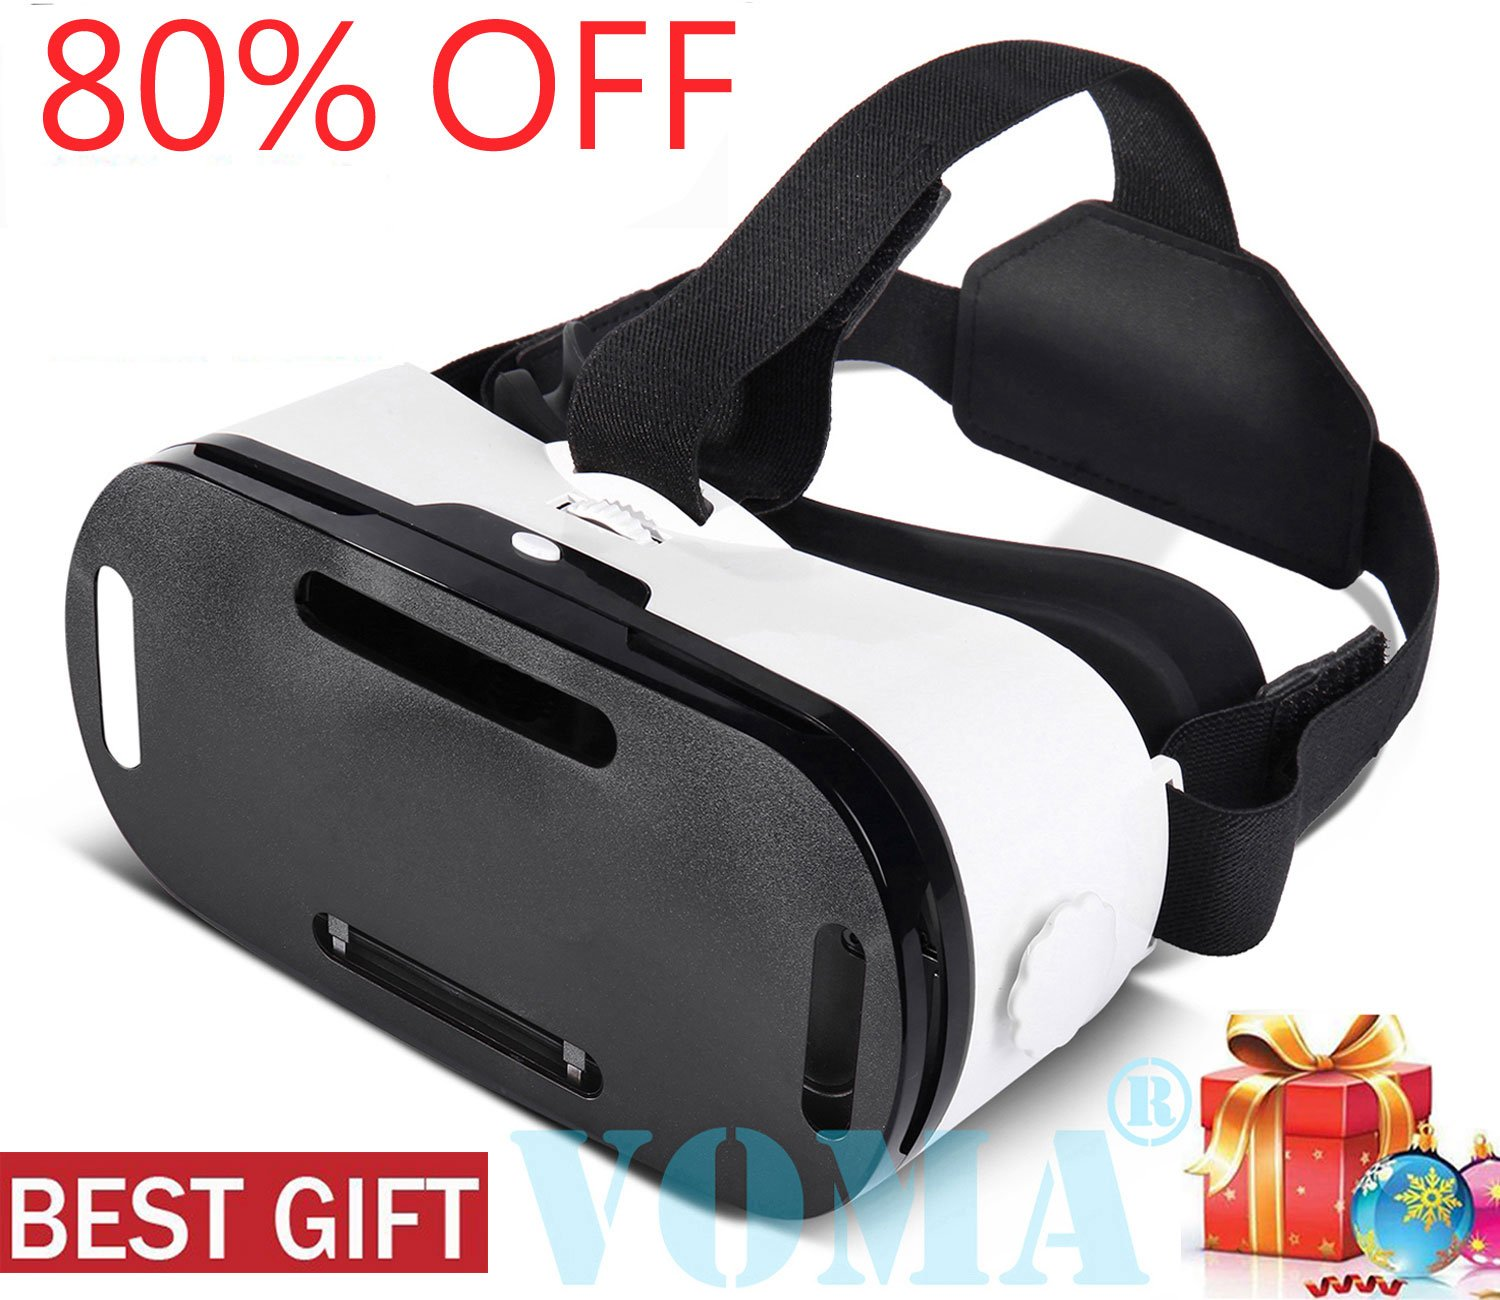 3D VR Glasses, 360 Degree Viewing Immersive VR Virtual Reality Headset 3D Movie Game Box For iPhone X 8 7 6/6s Plus, Samsung S8 S7 S6/Plus/Edge Note 8, Smartphones w/ 4.7-6.0in Screen White1